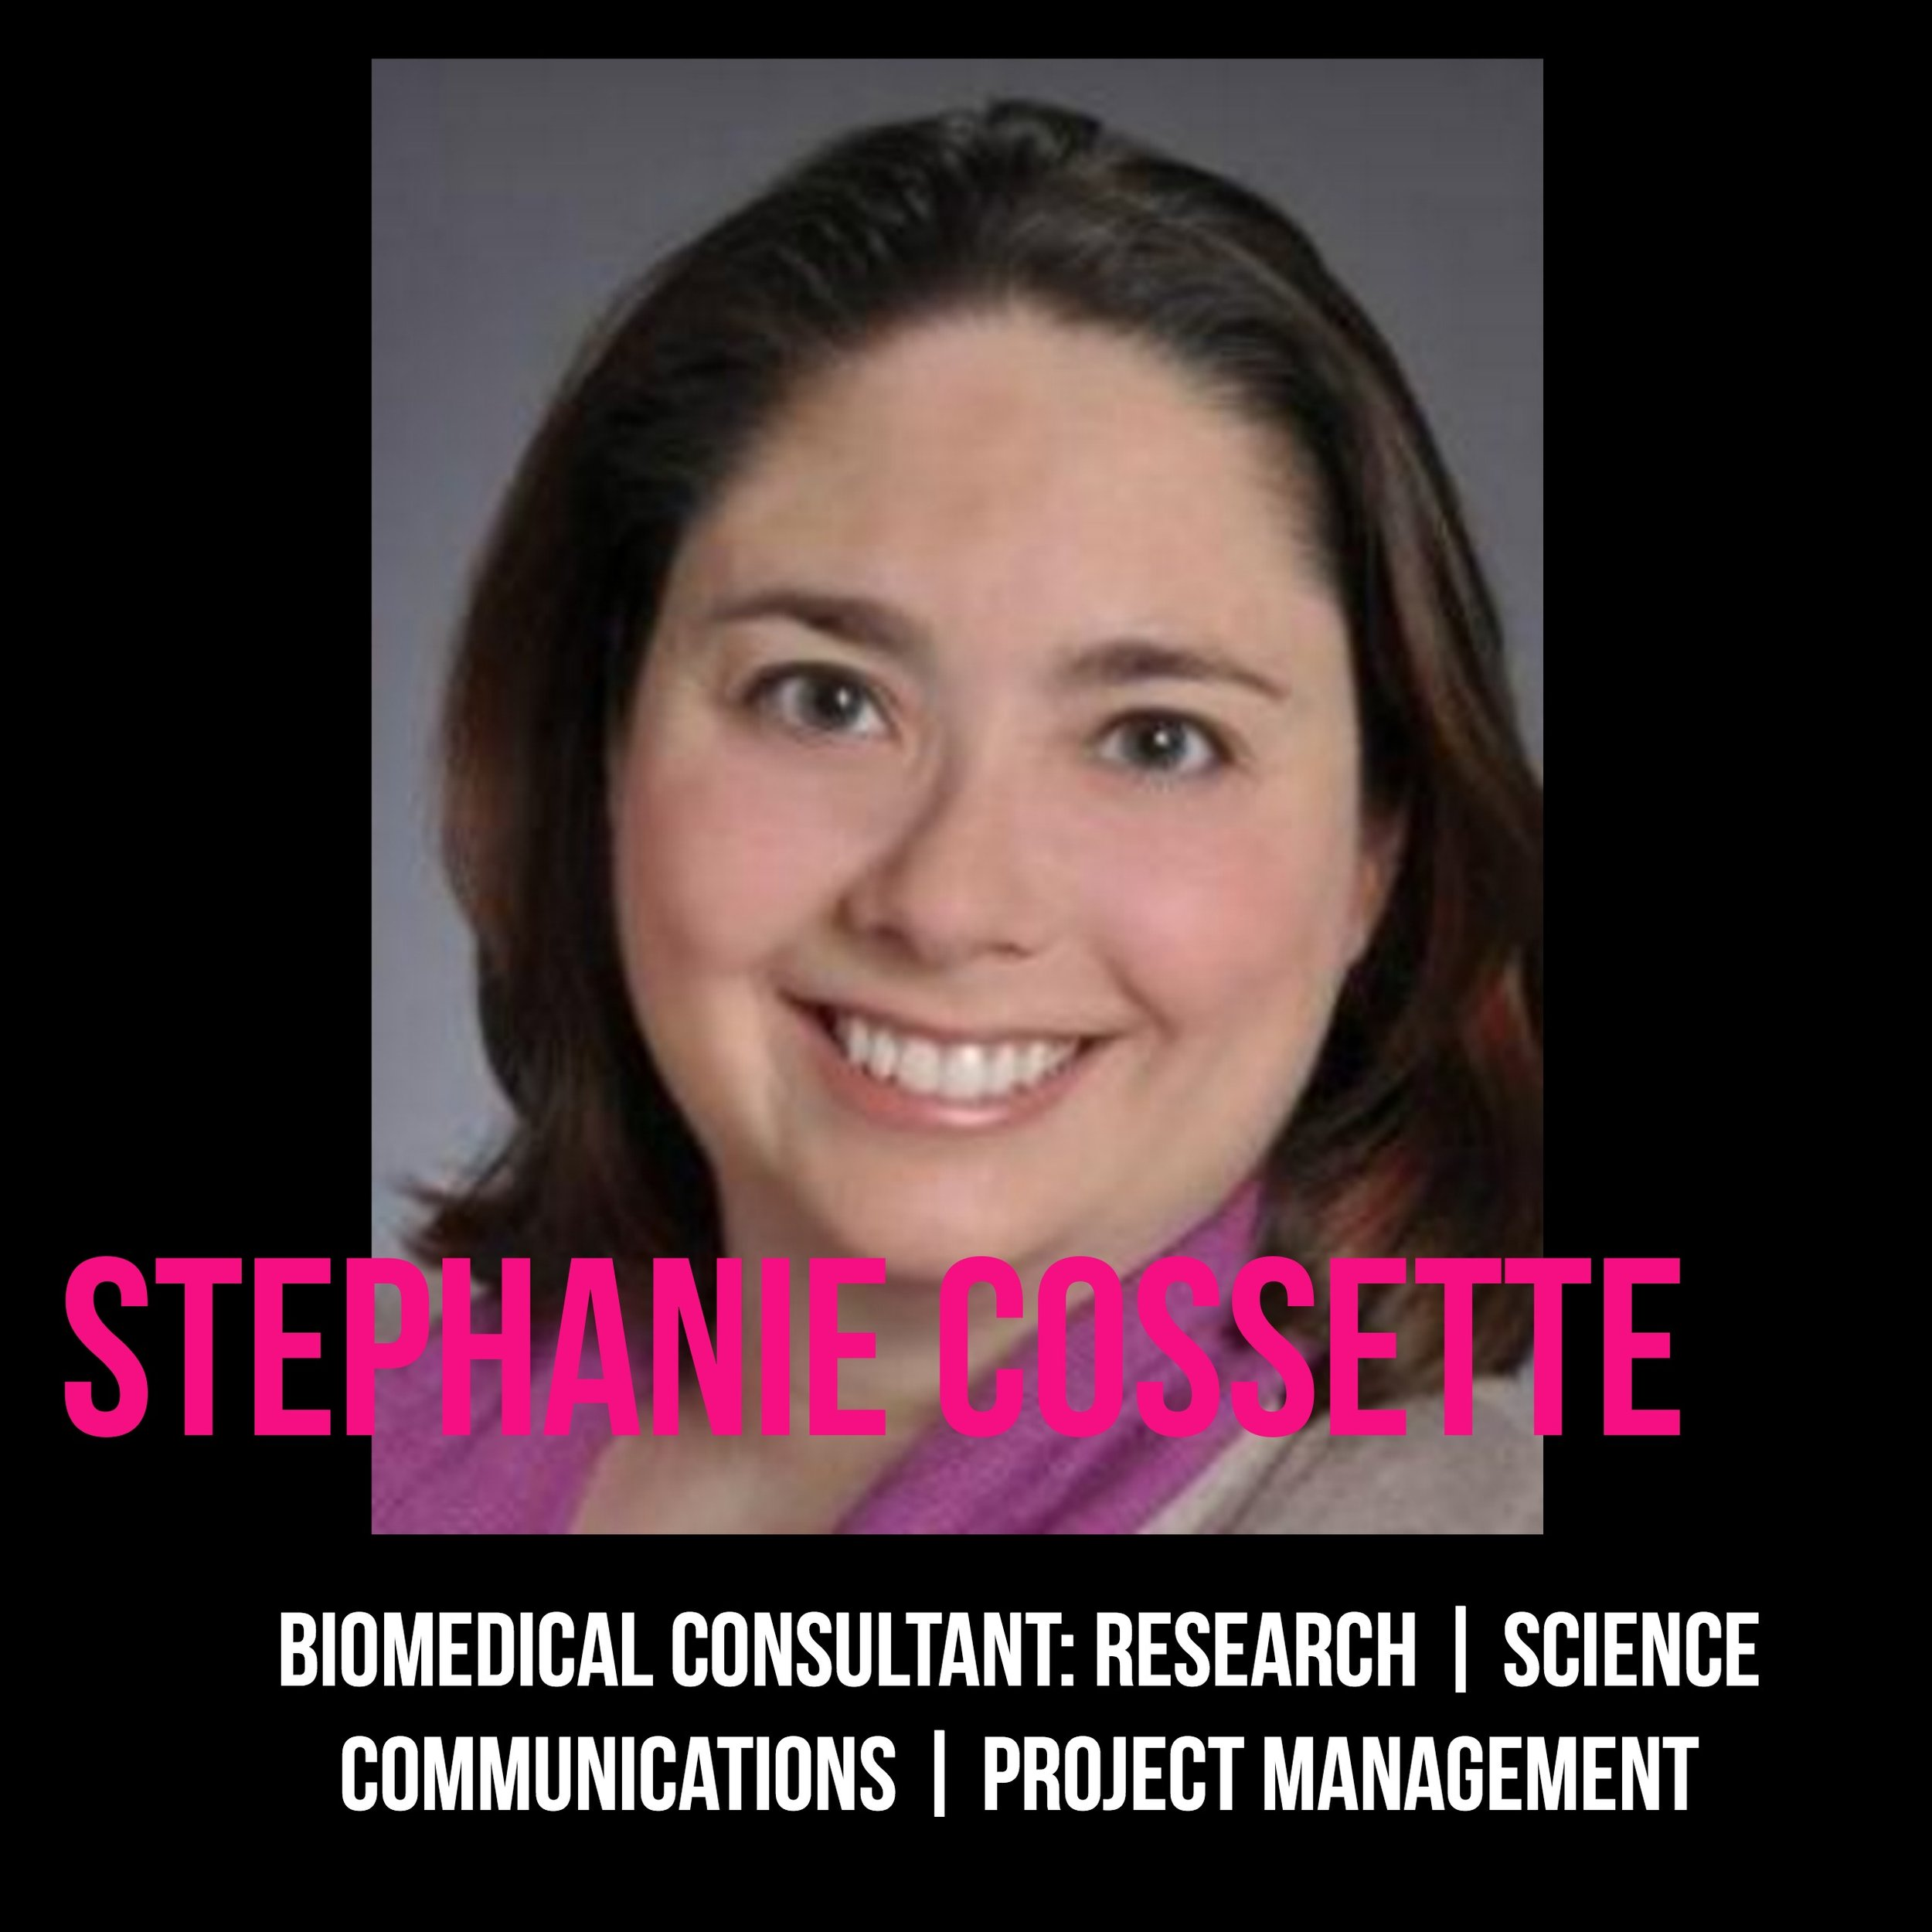 THE JILLS OF ALL TRADES™ Stephanie Cossette Biomedical Consultant Research, Communications and Project Management